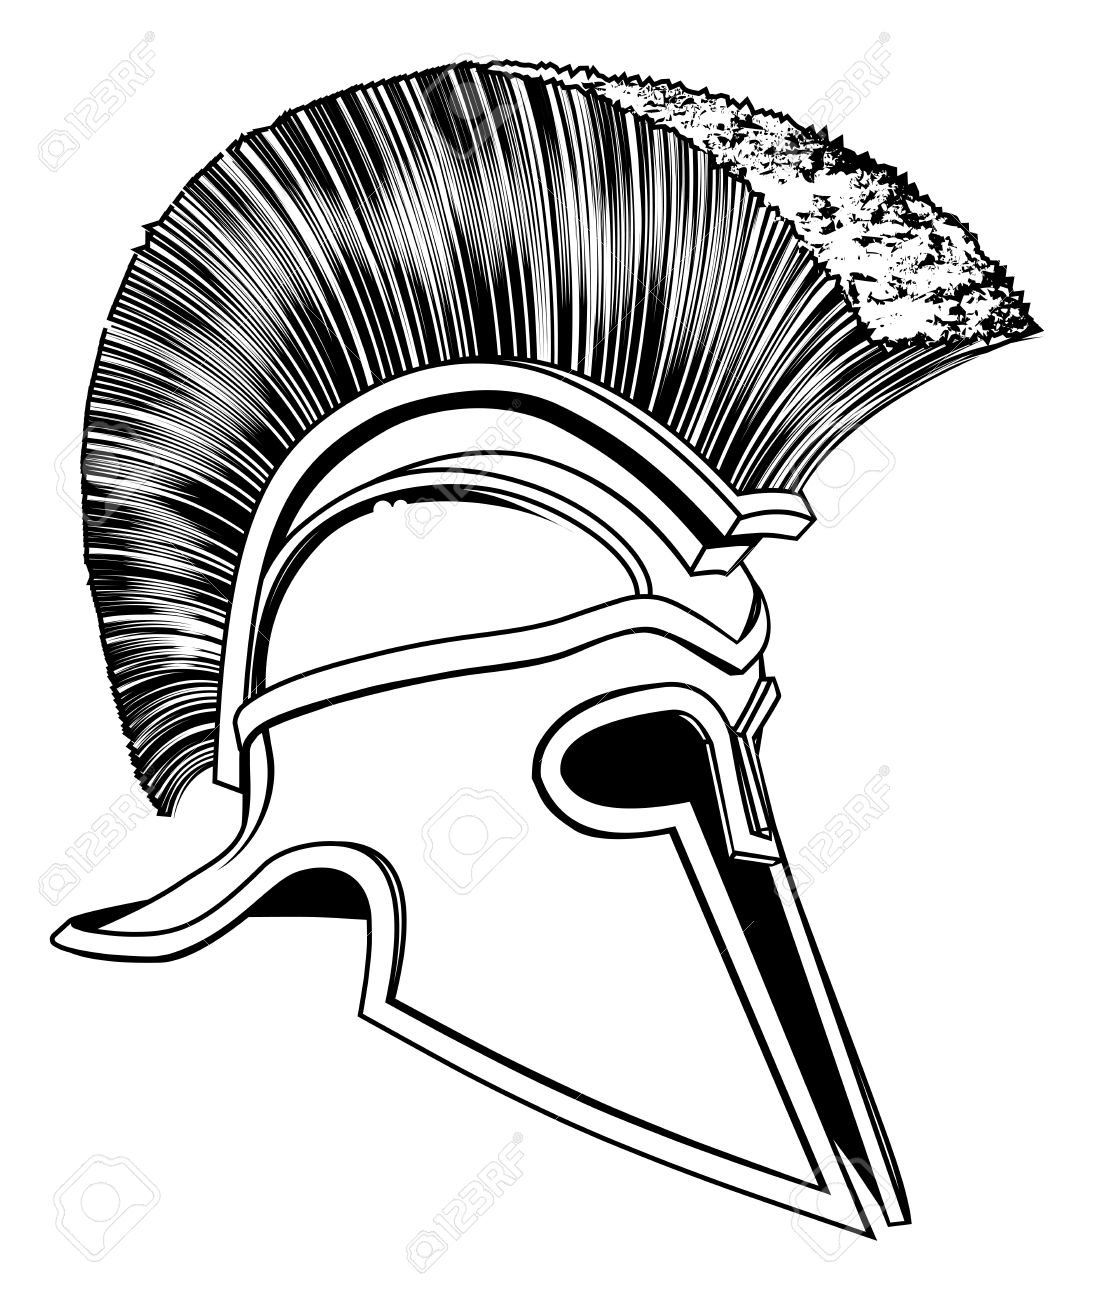 1,870 Spartan Helmet Stock Vector Illustration And Royalty Free.